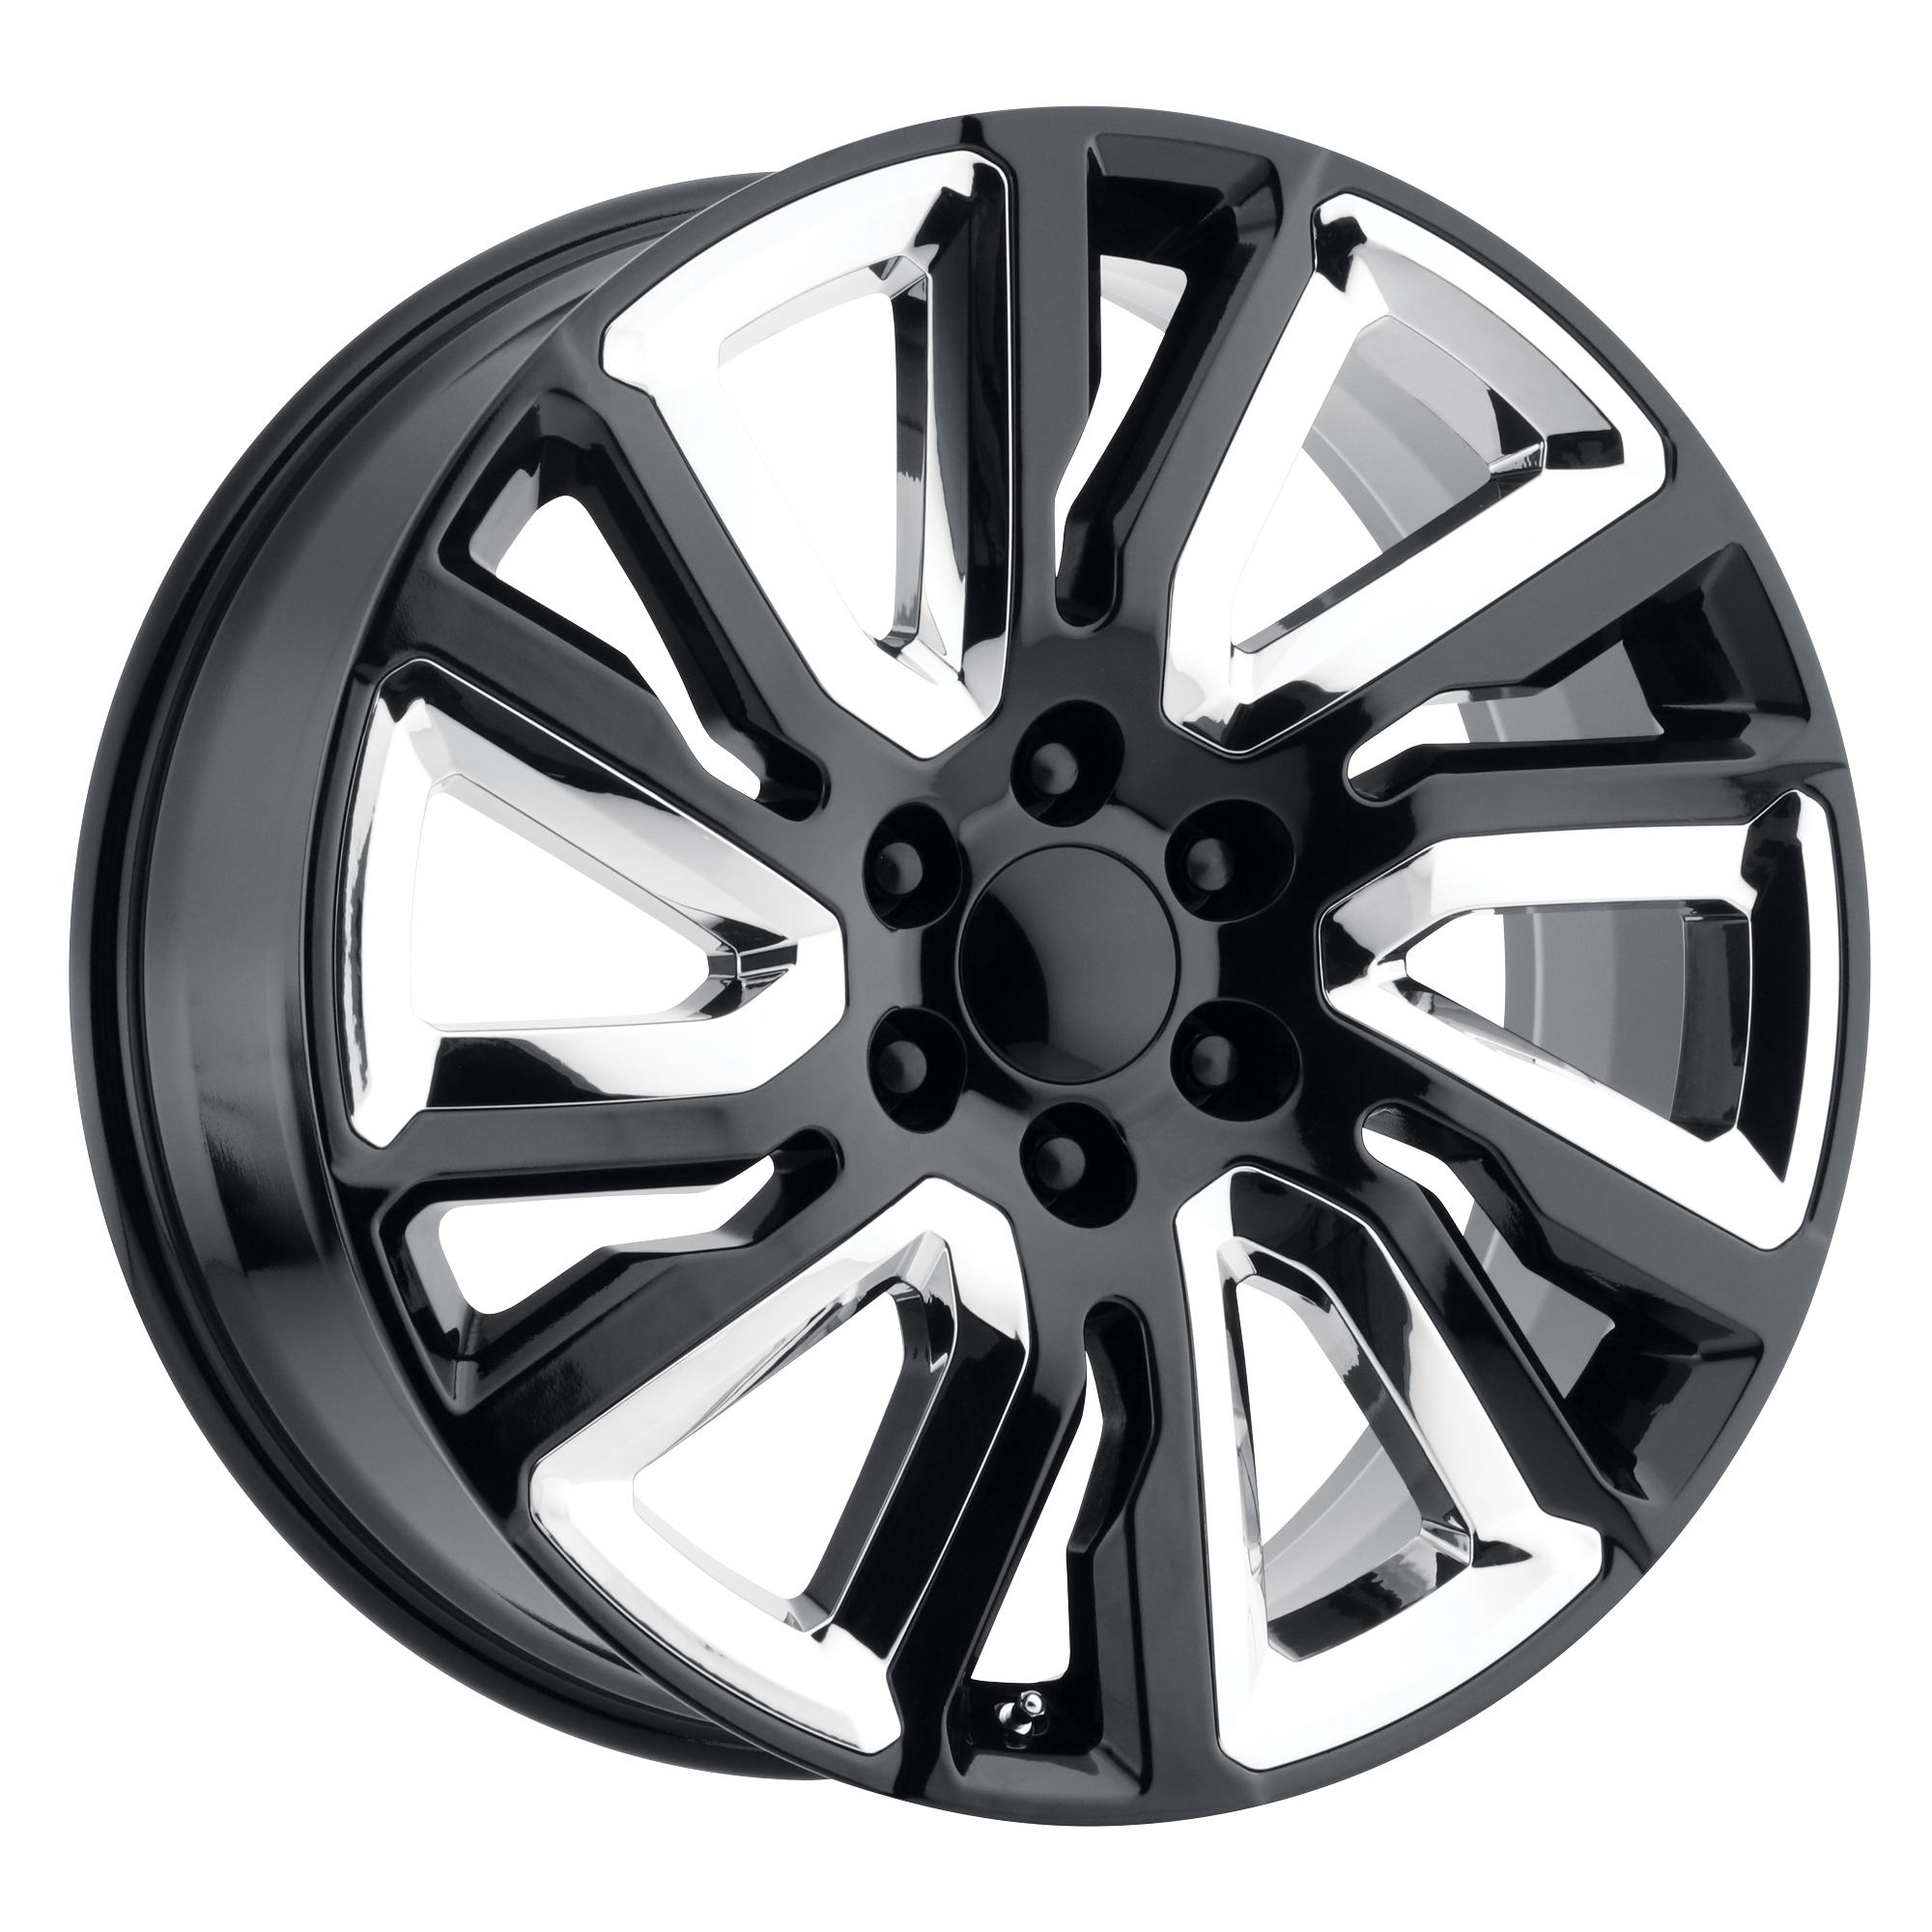 OE Creations Wheels PR202 - Gloss Black With Chrome Accents Rim